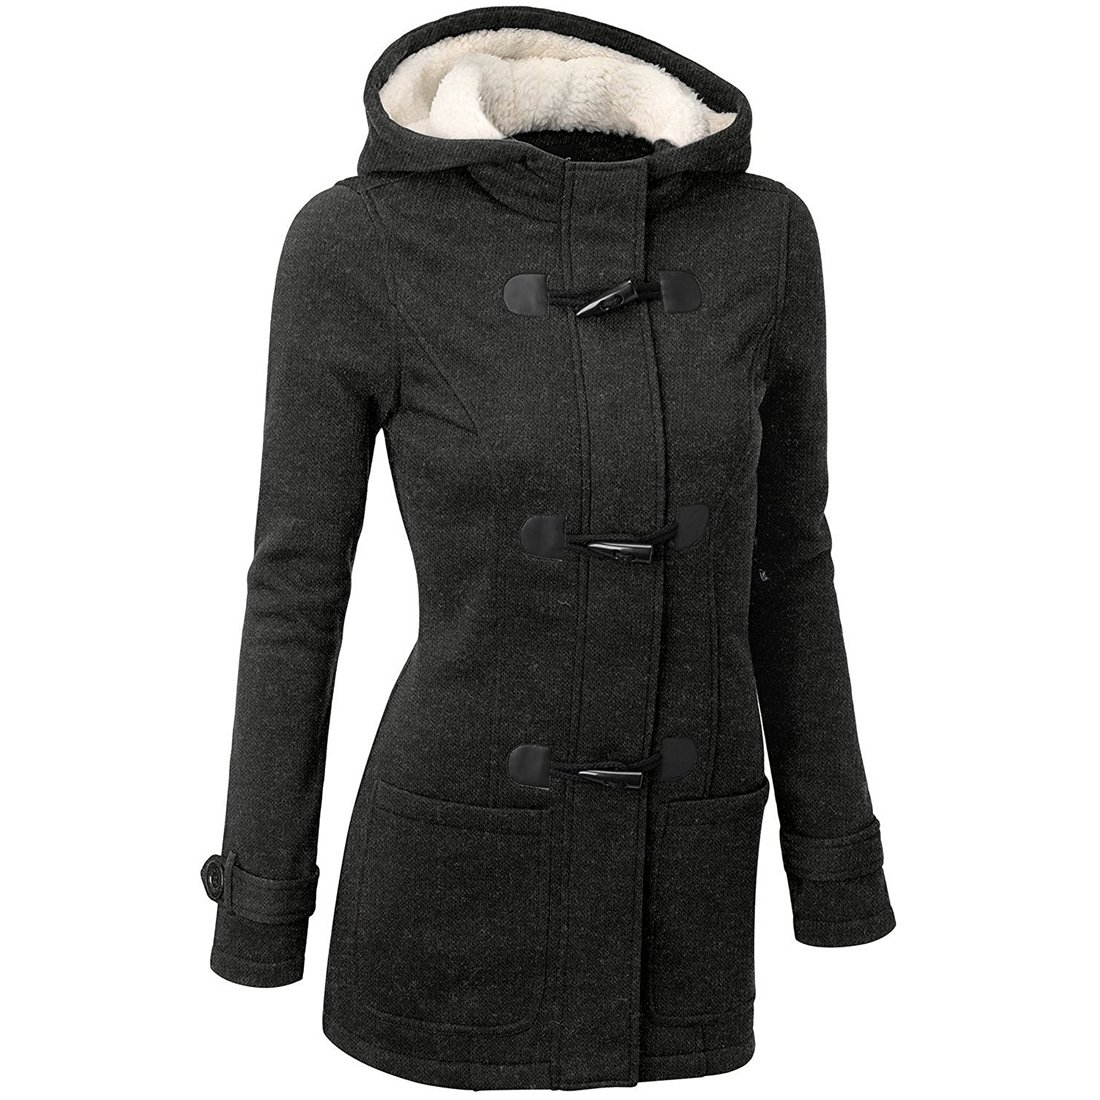 Susanny Womens Winter Fashion Outdoor Warm Wool Blended Classic Pea Coat Jacket